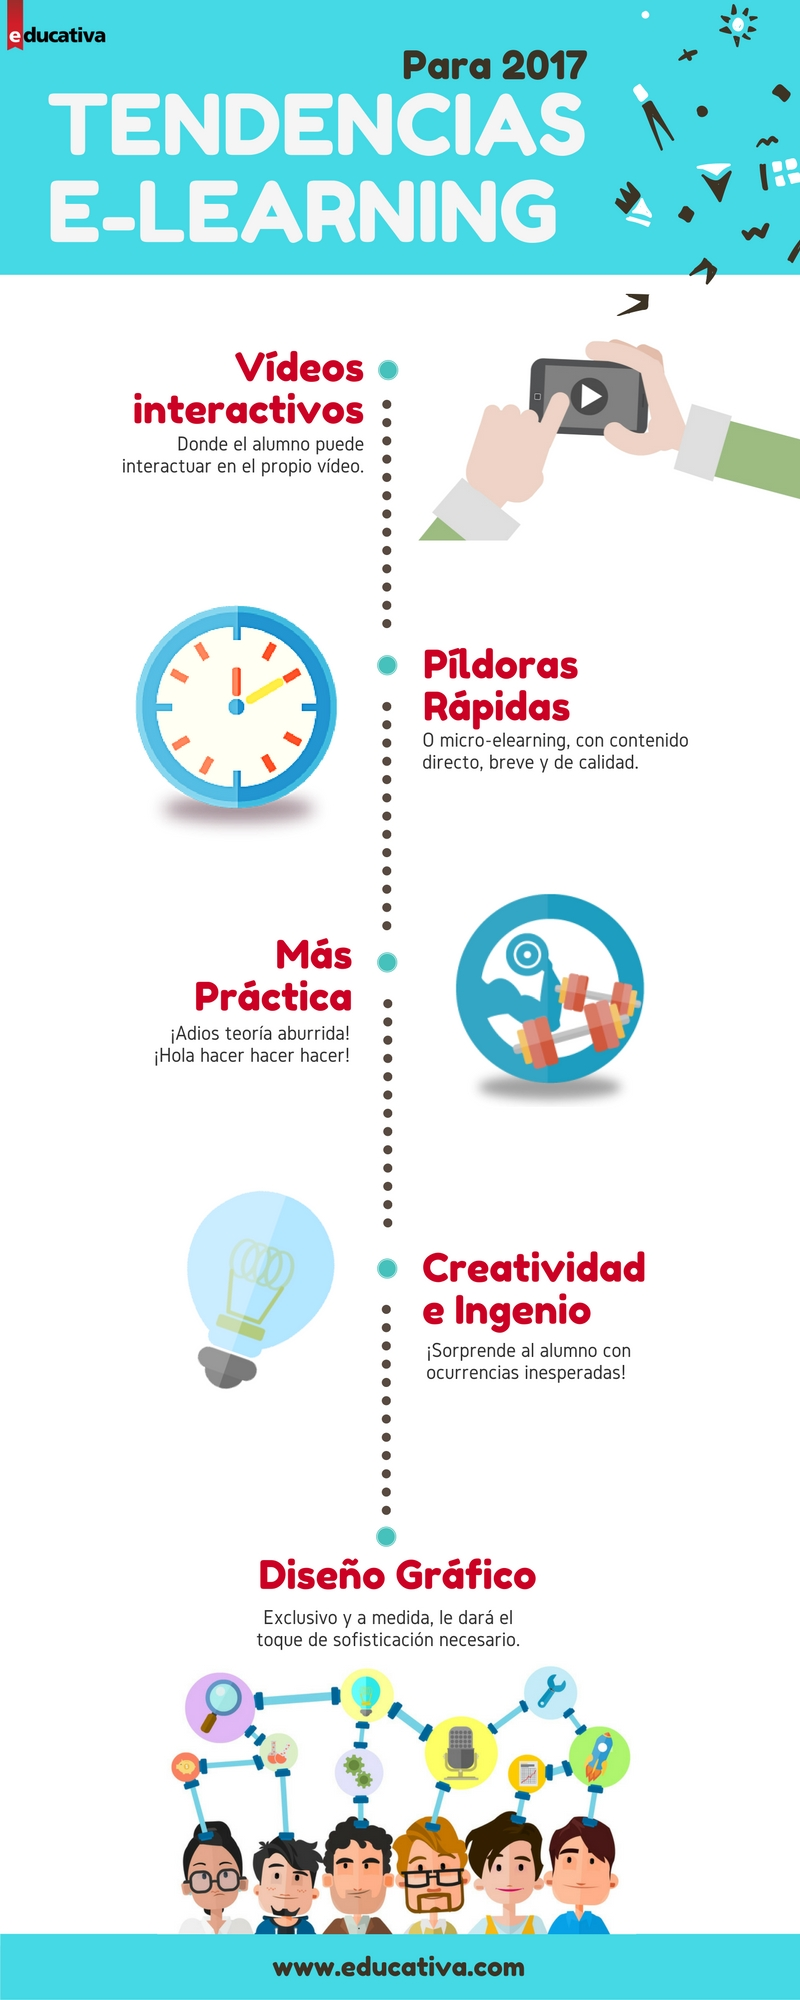 Tendencias e-learning